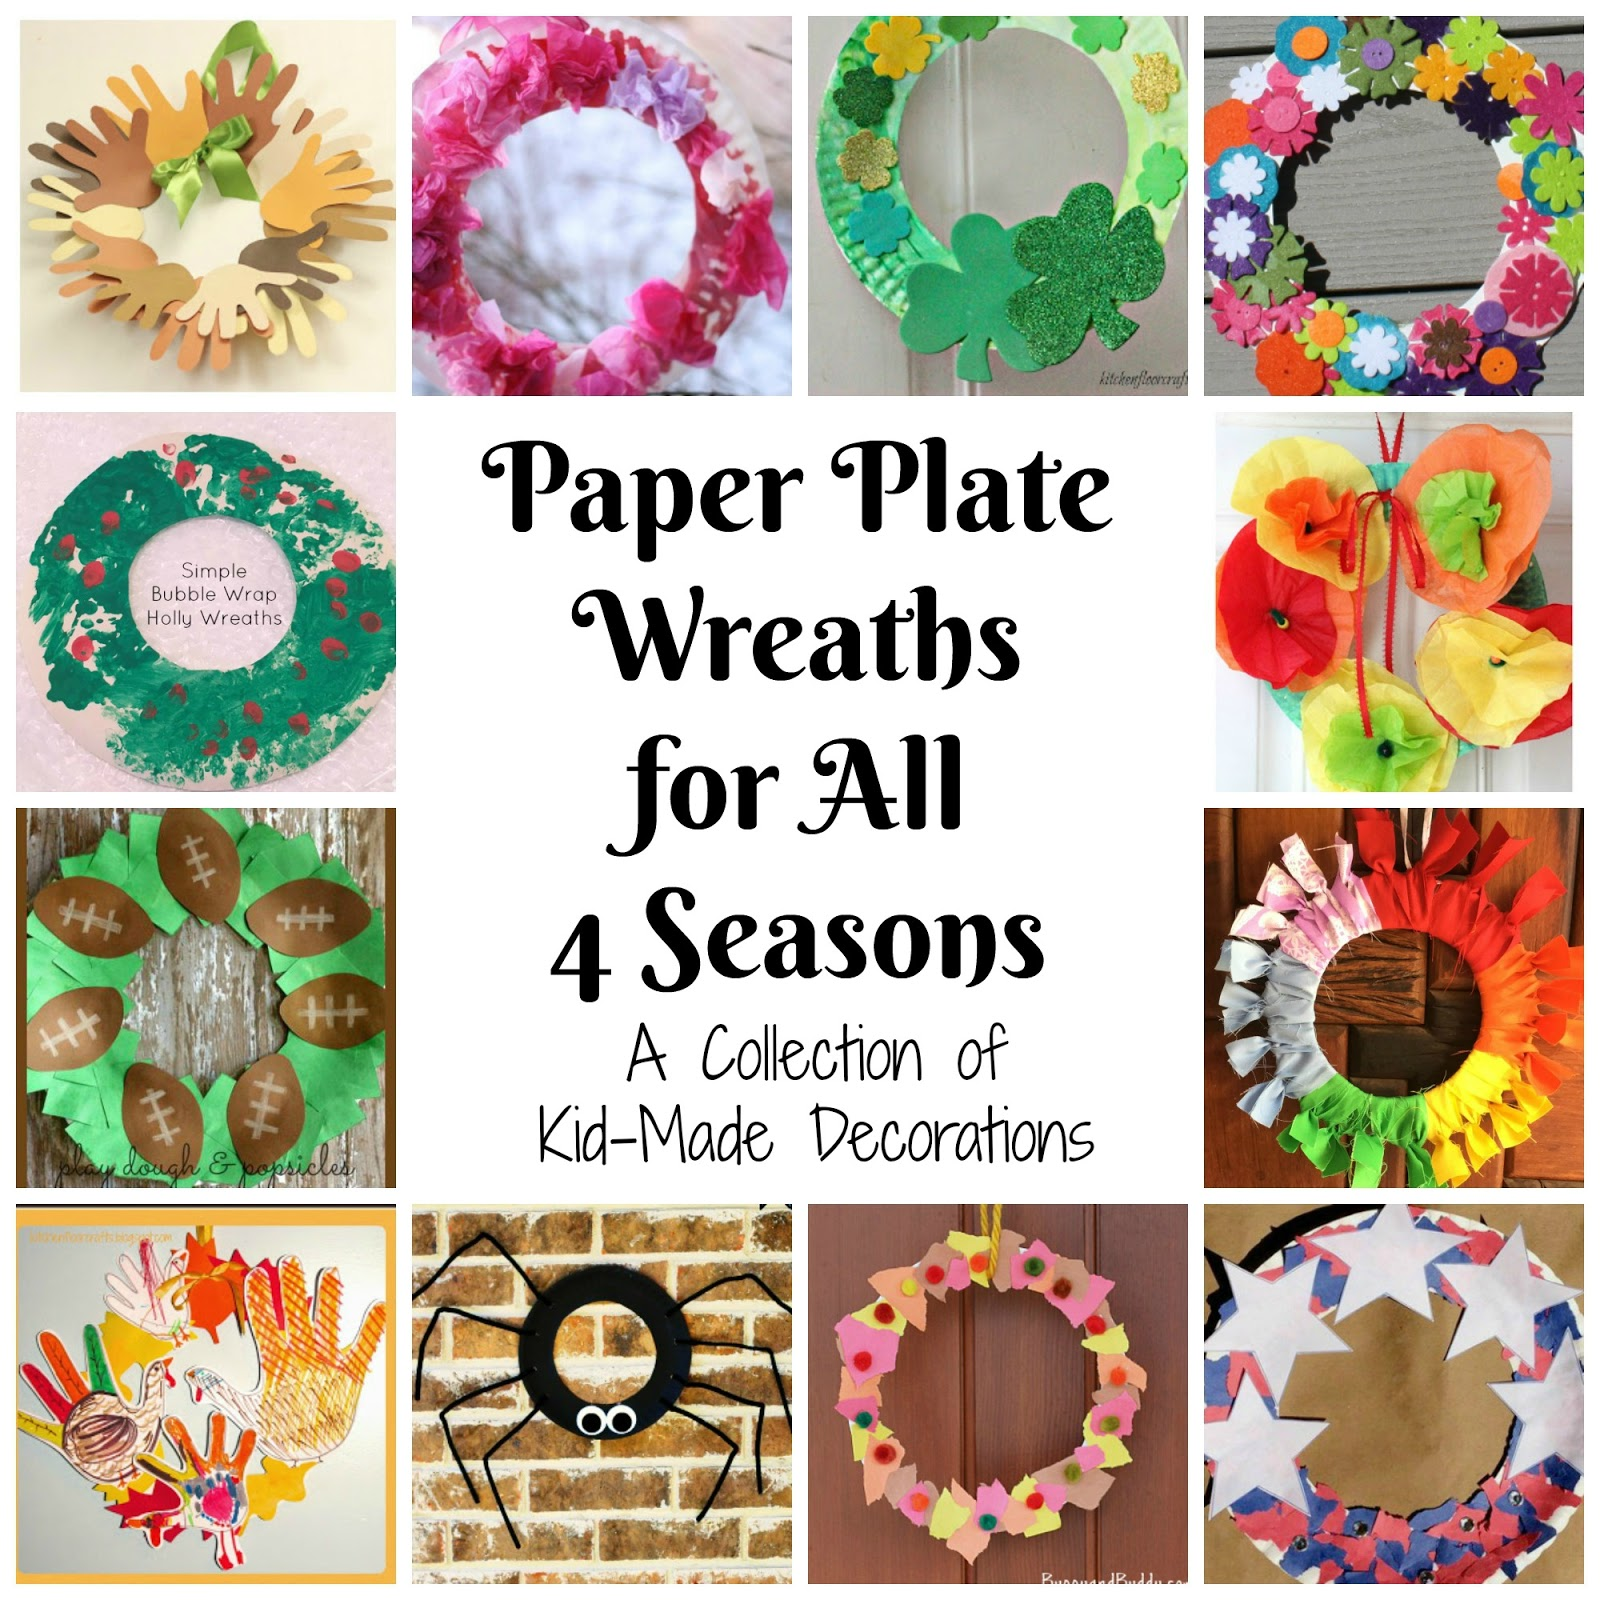 ...  Paper Plate Wreath  using a paper plate and some decorations. In fact we find them so easy weu0027ve made them for several different seasons and holidays!  sc 1 st  Kitchen Floor Crafts - Blogger & Kitchen Floor Crafts: Paper Plate Wreaths for All 4 Seasons